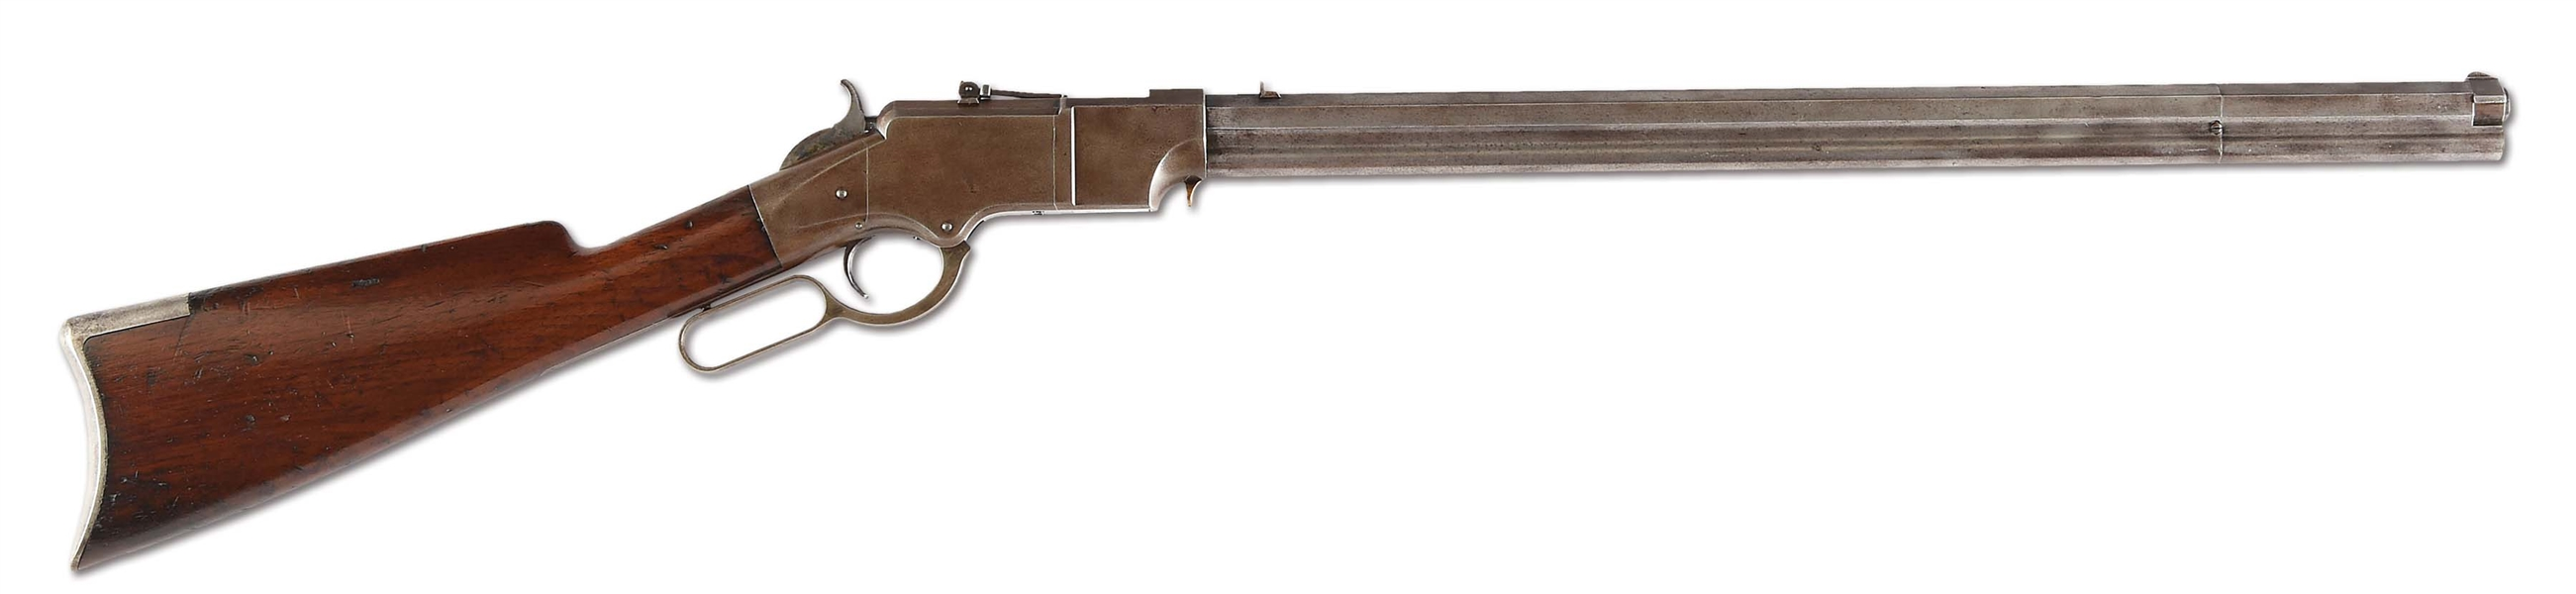 (A) OUTSTANDING NEW HAVEN ARMS 1ST MODEL IRON FRAME HENRY RIFLE (1862).